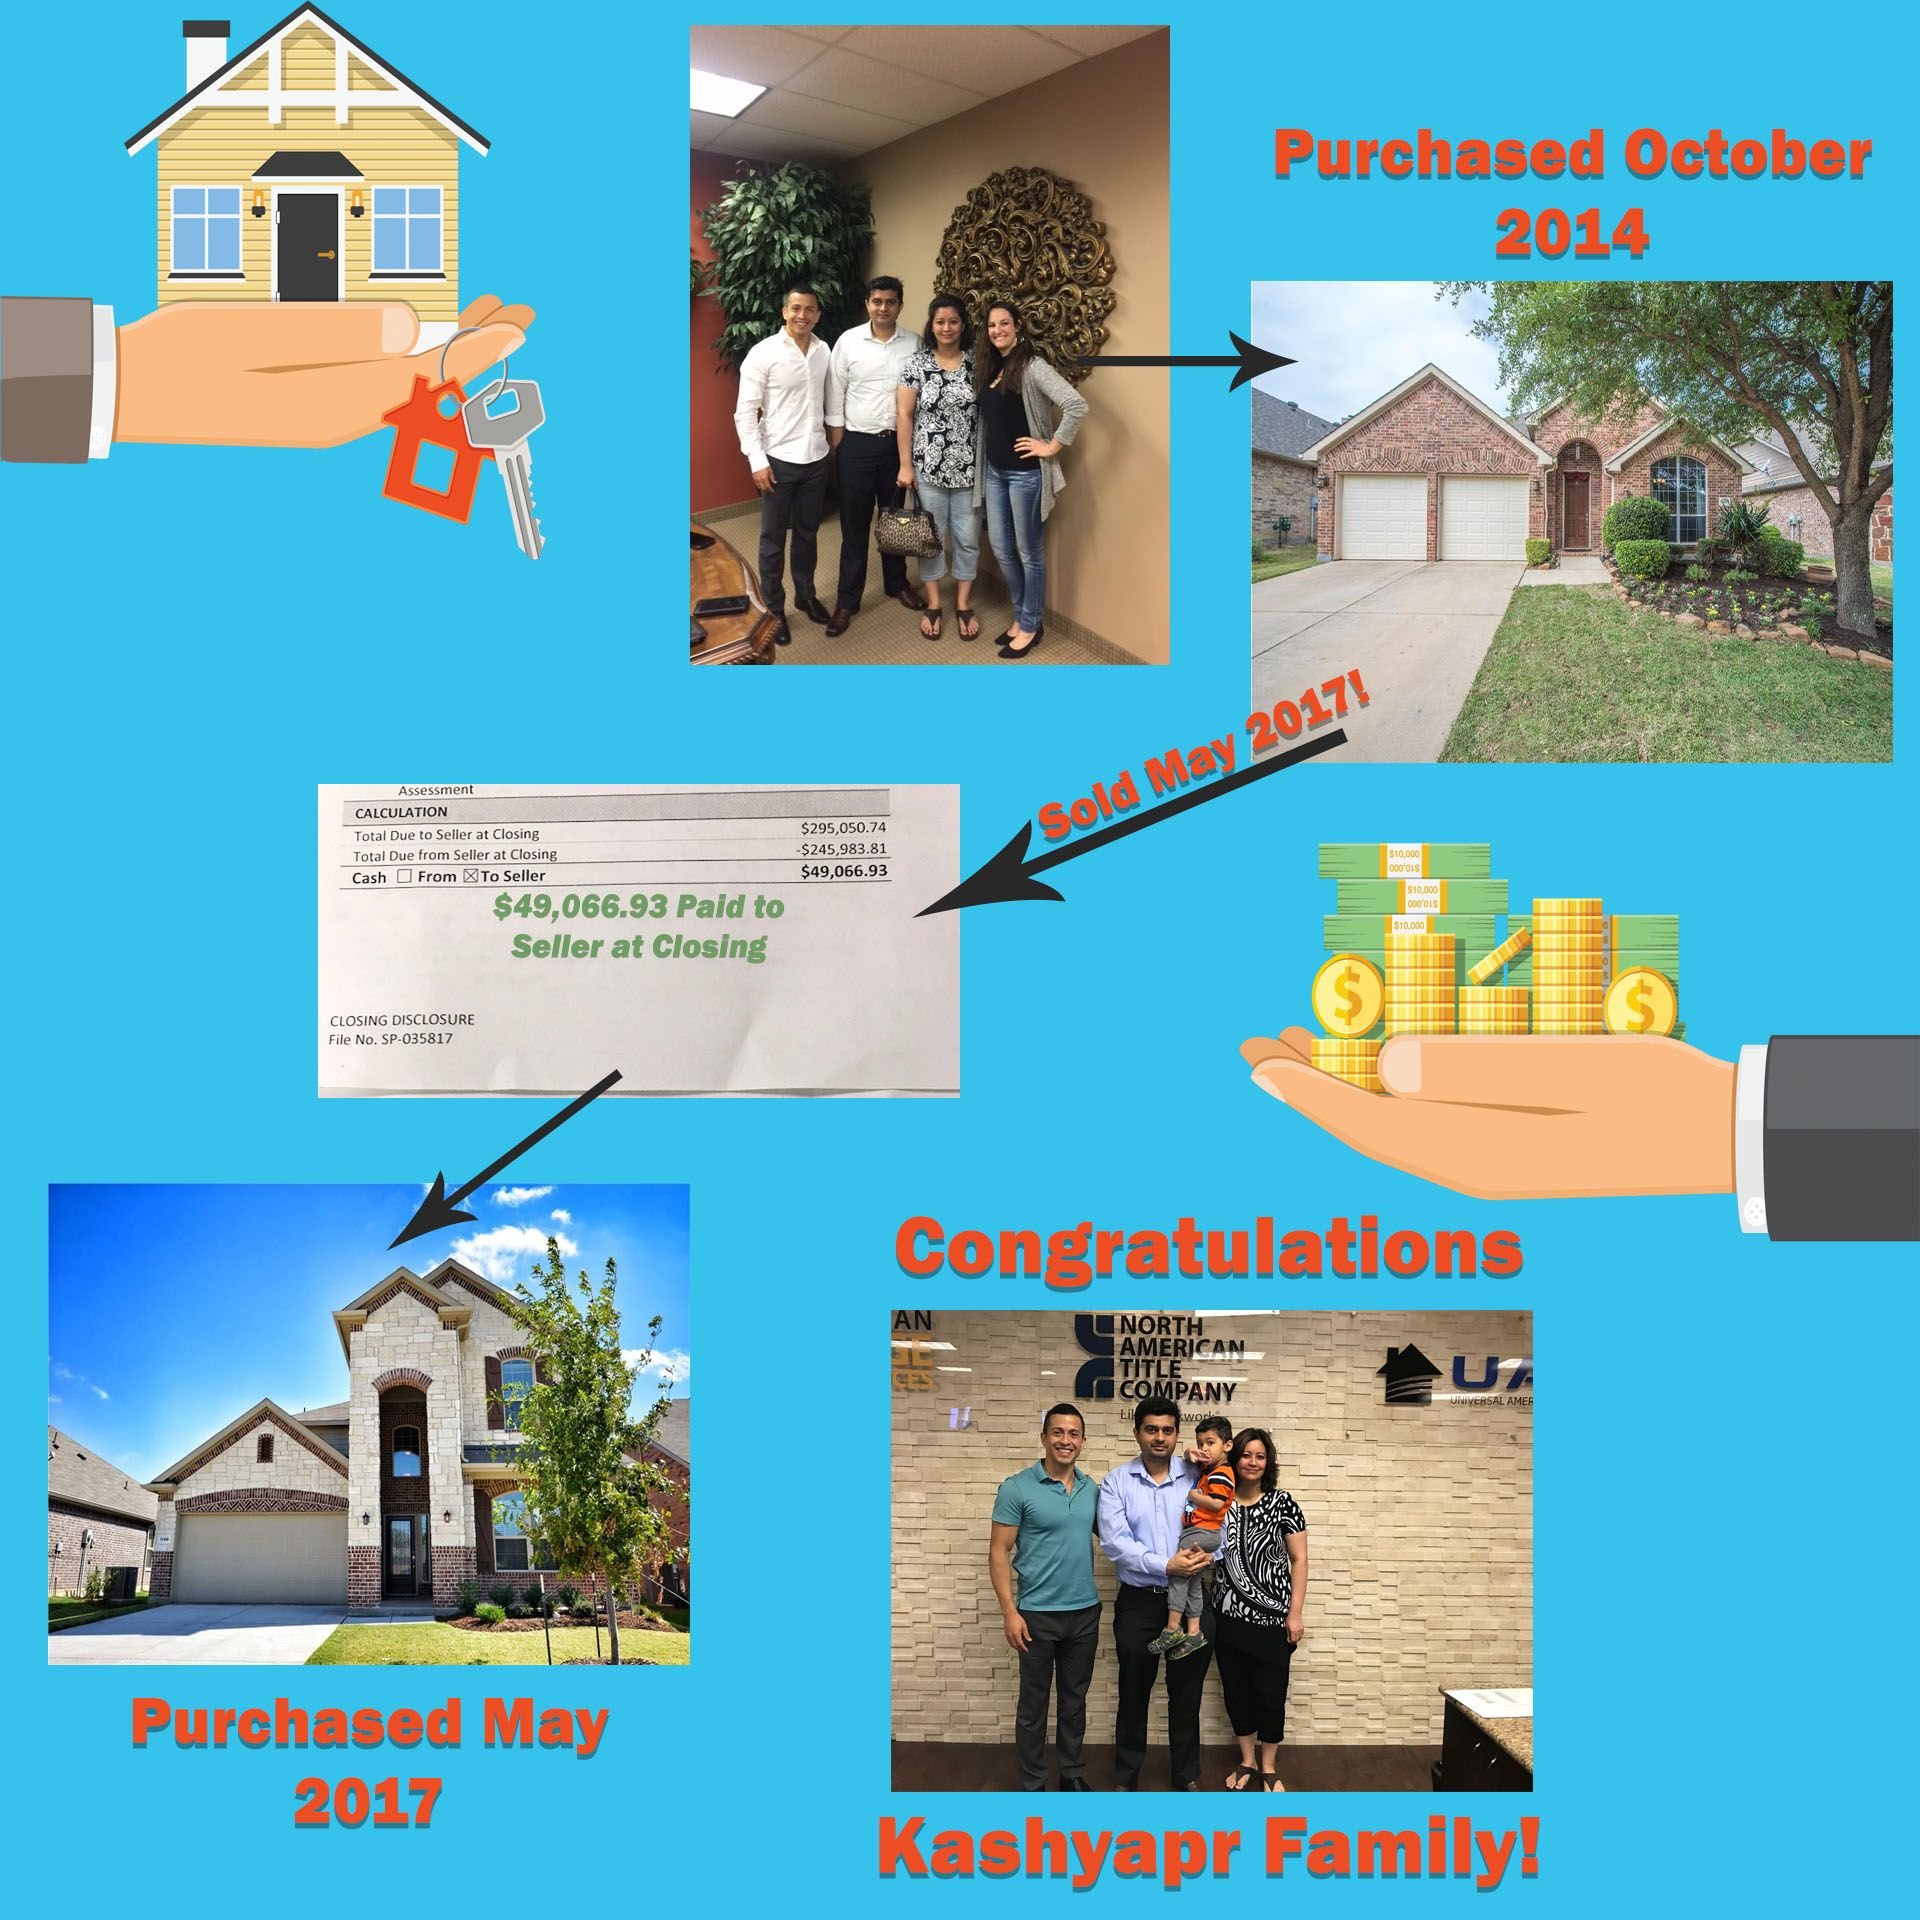 MSI Helped Mahesh Purchase His First Home In 2014. MSI's